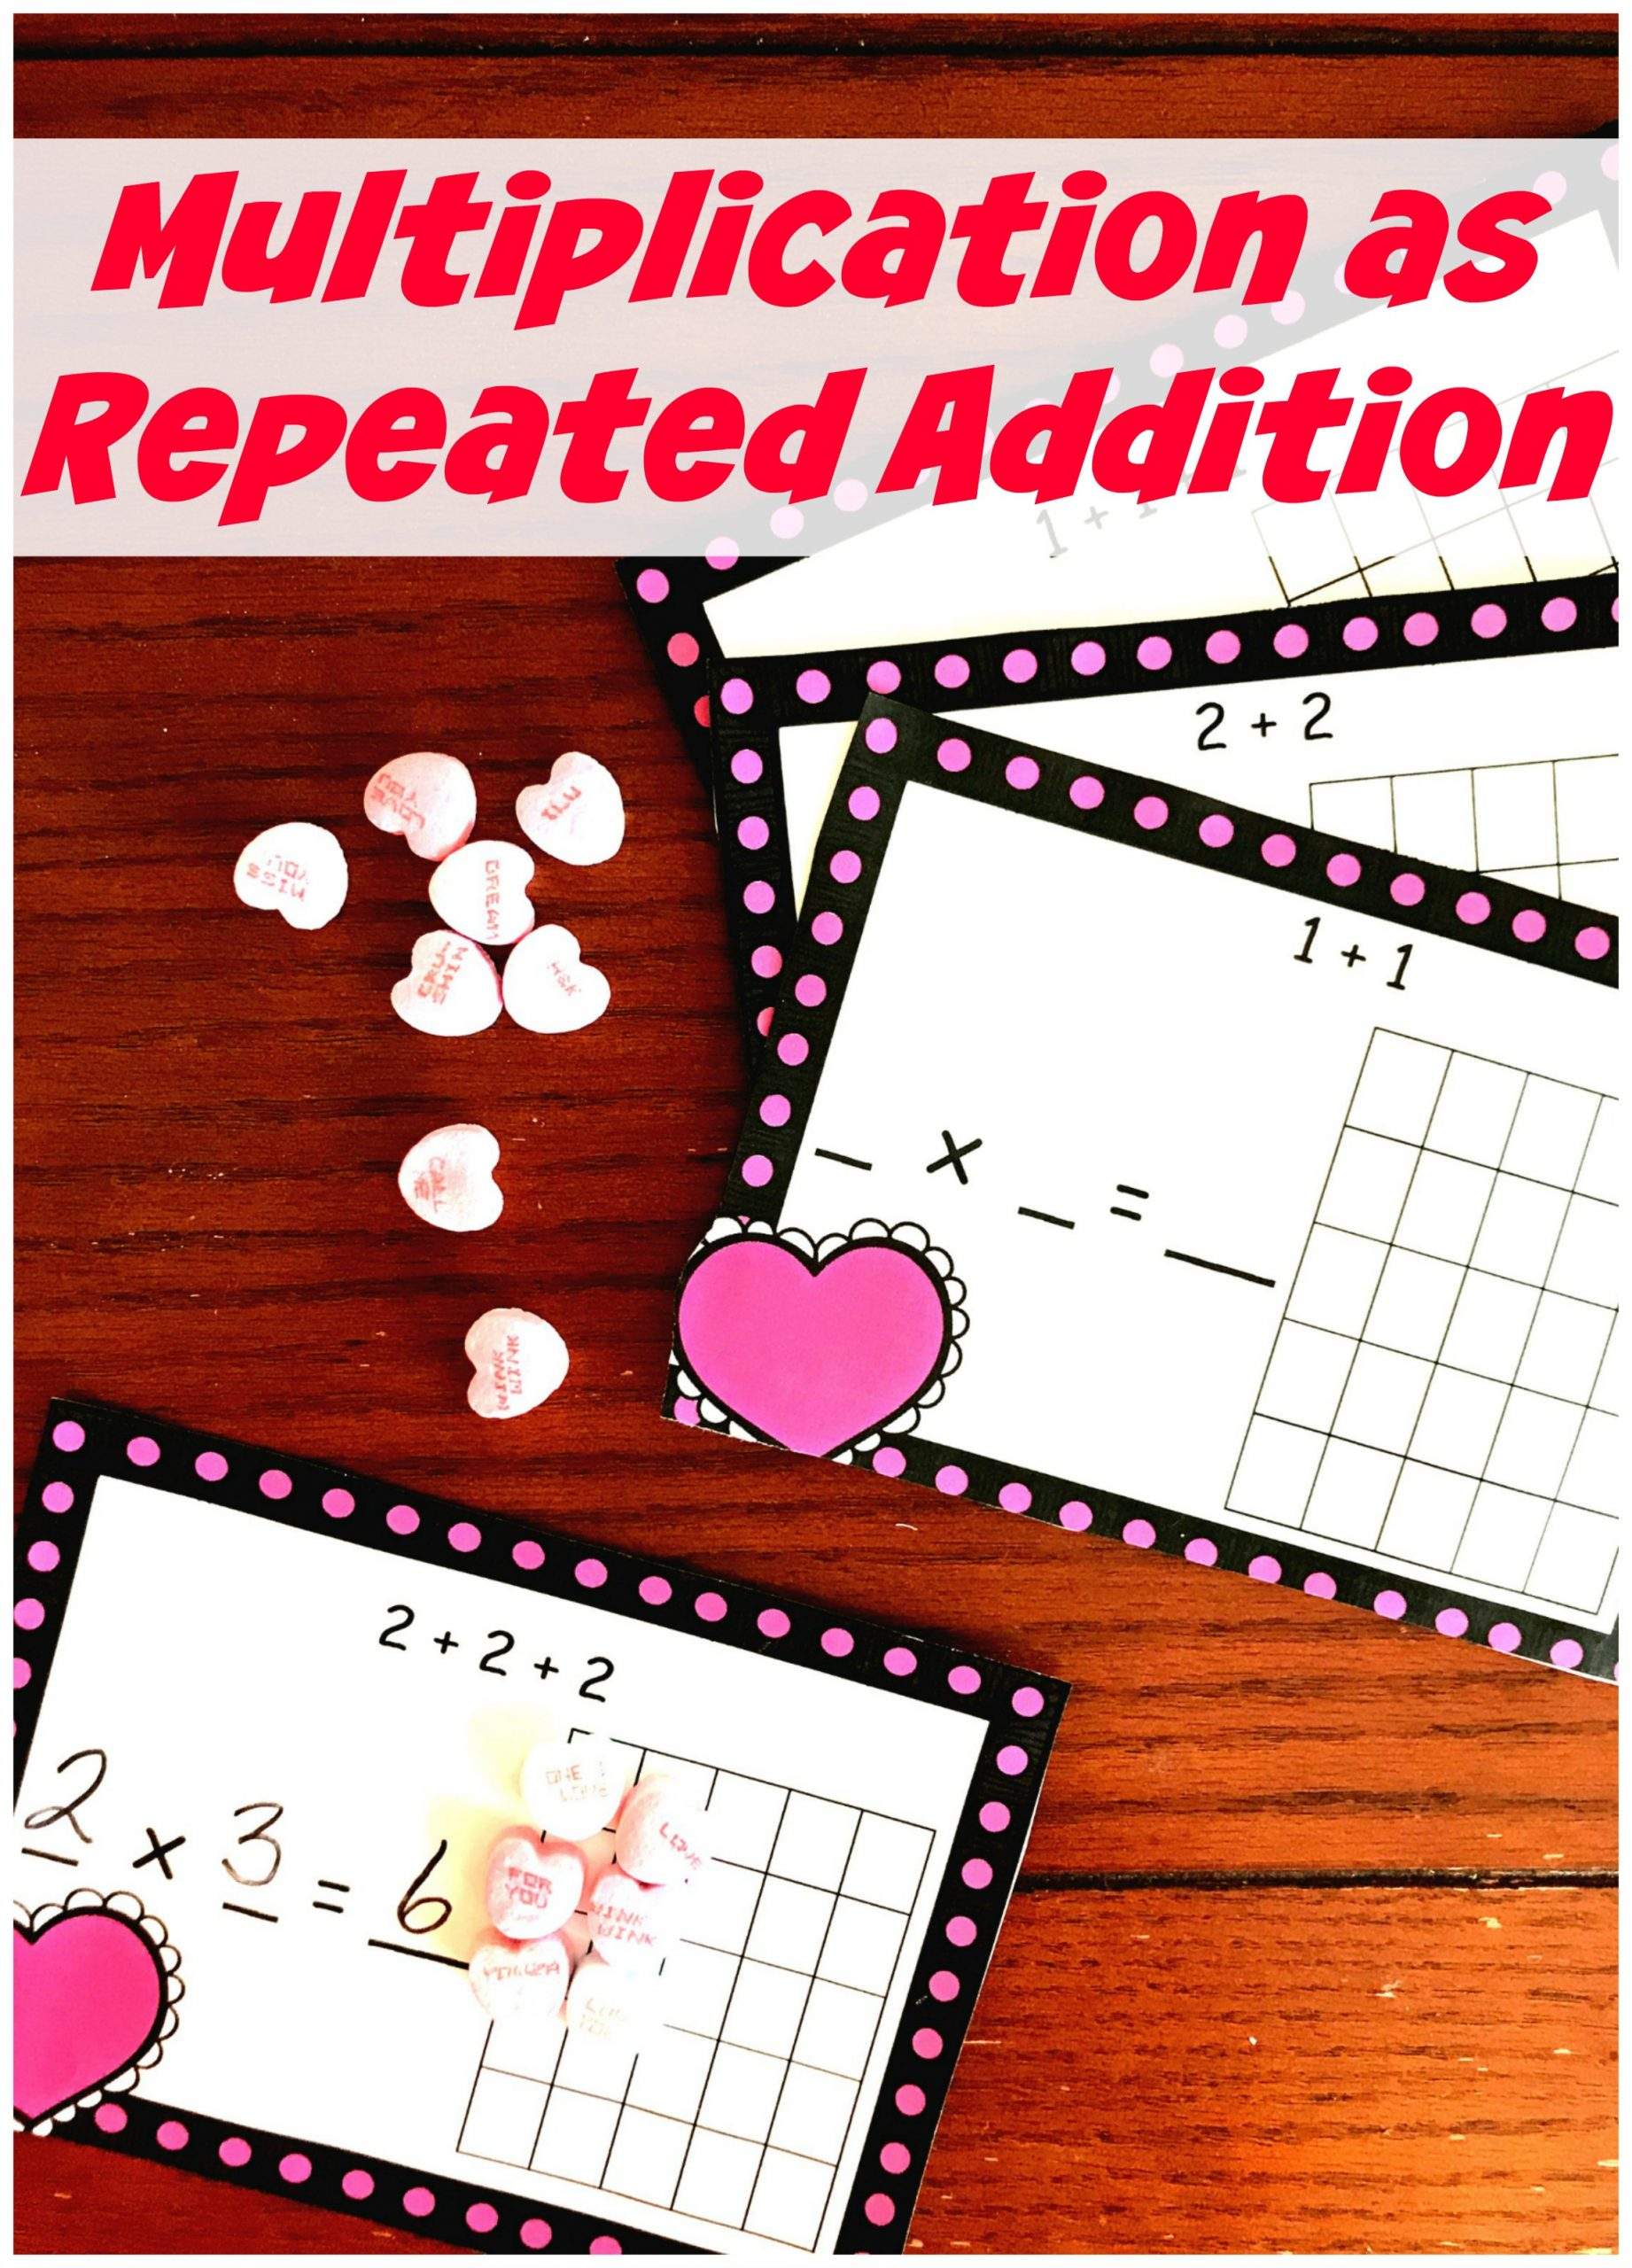 Multiplication as Repeated Addition worksheet pin